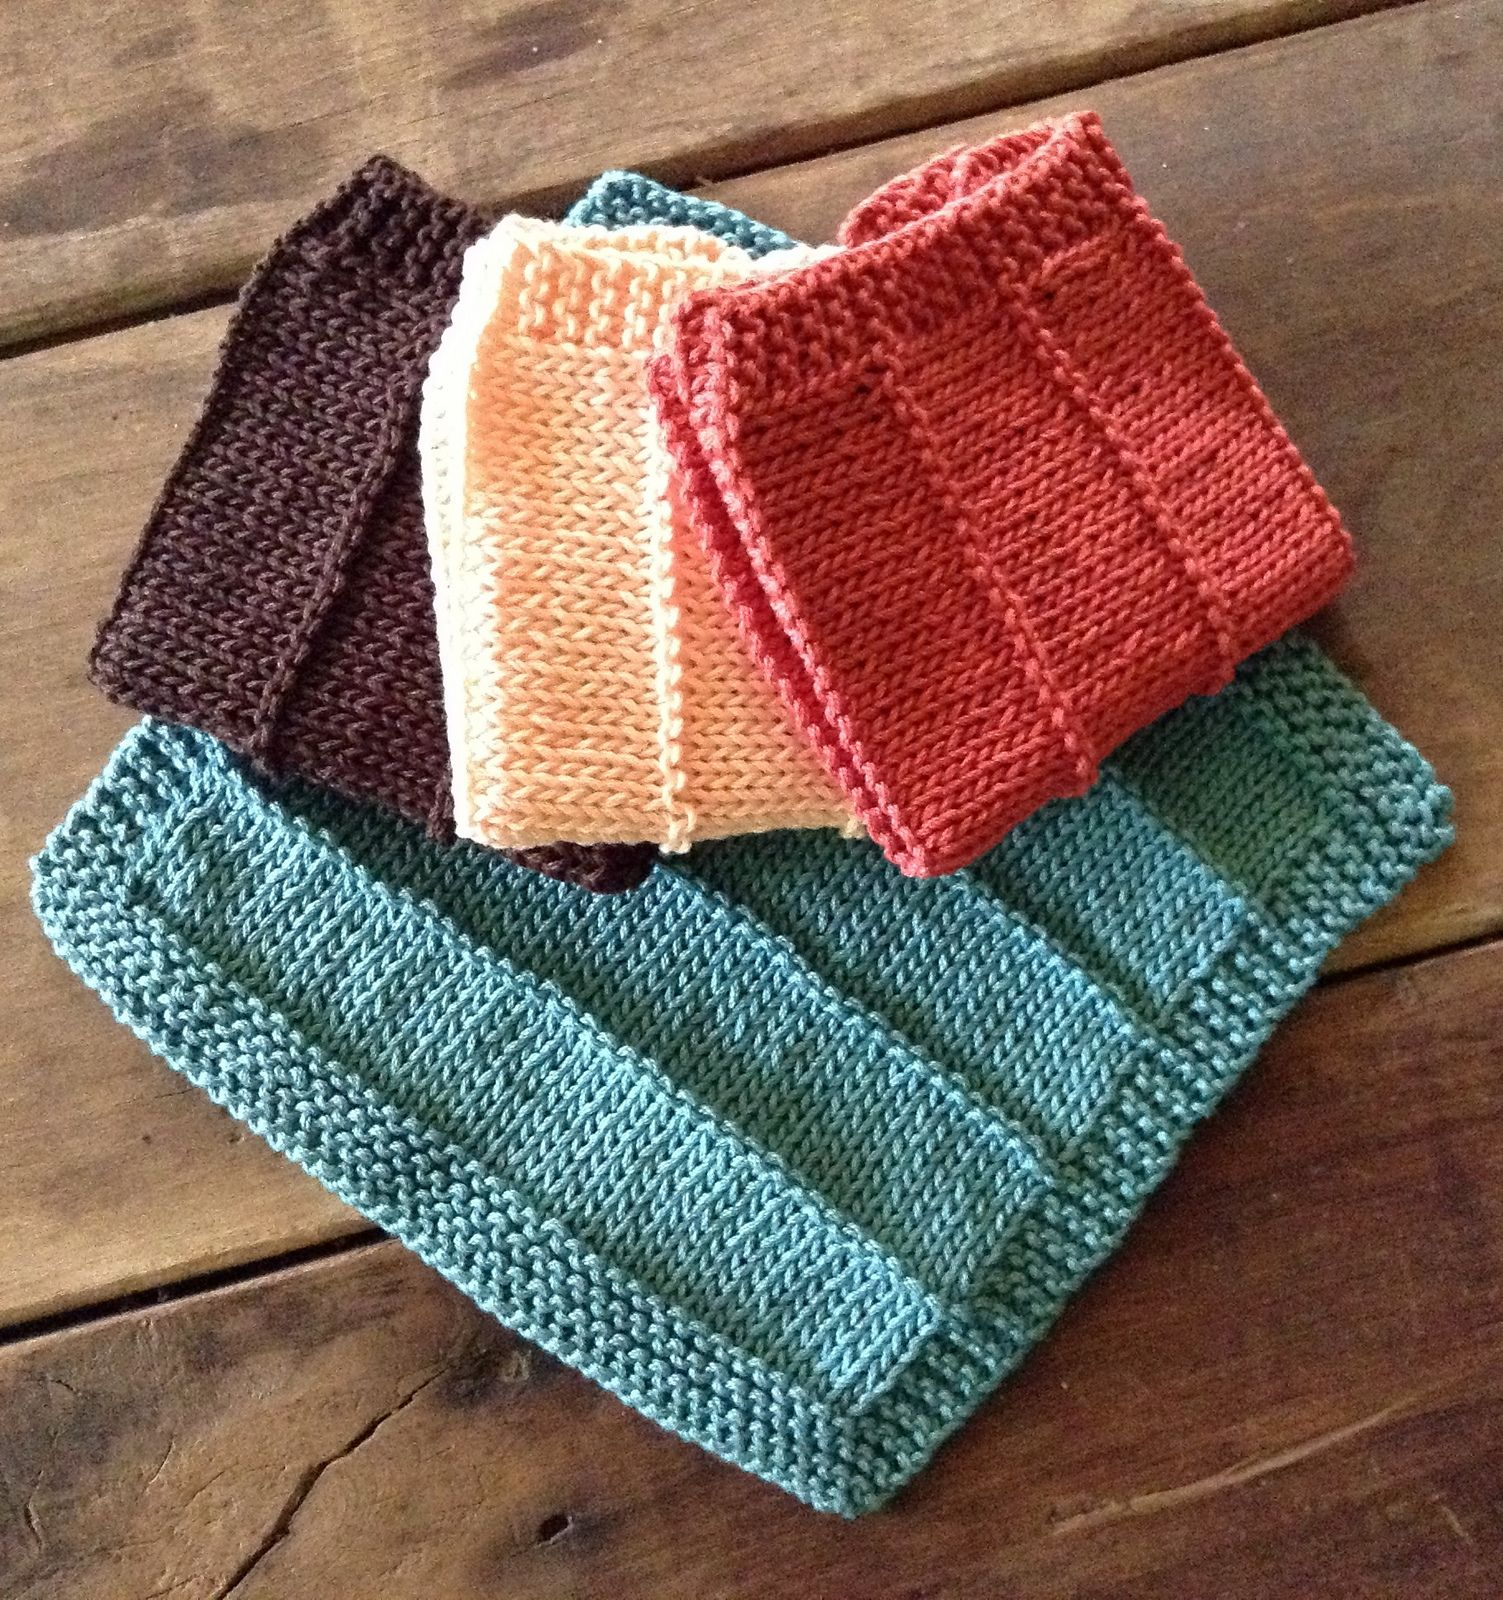 Spa Cloth By Mary Turley/M Designs - Free Knitting Pattern ...